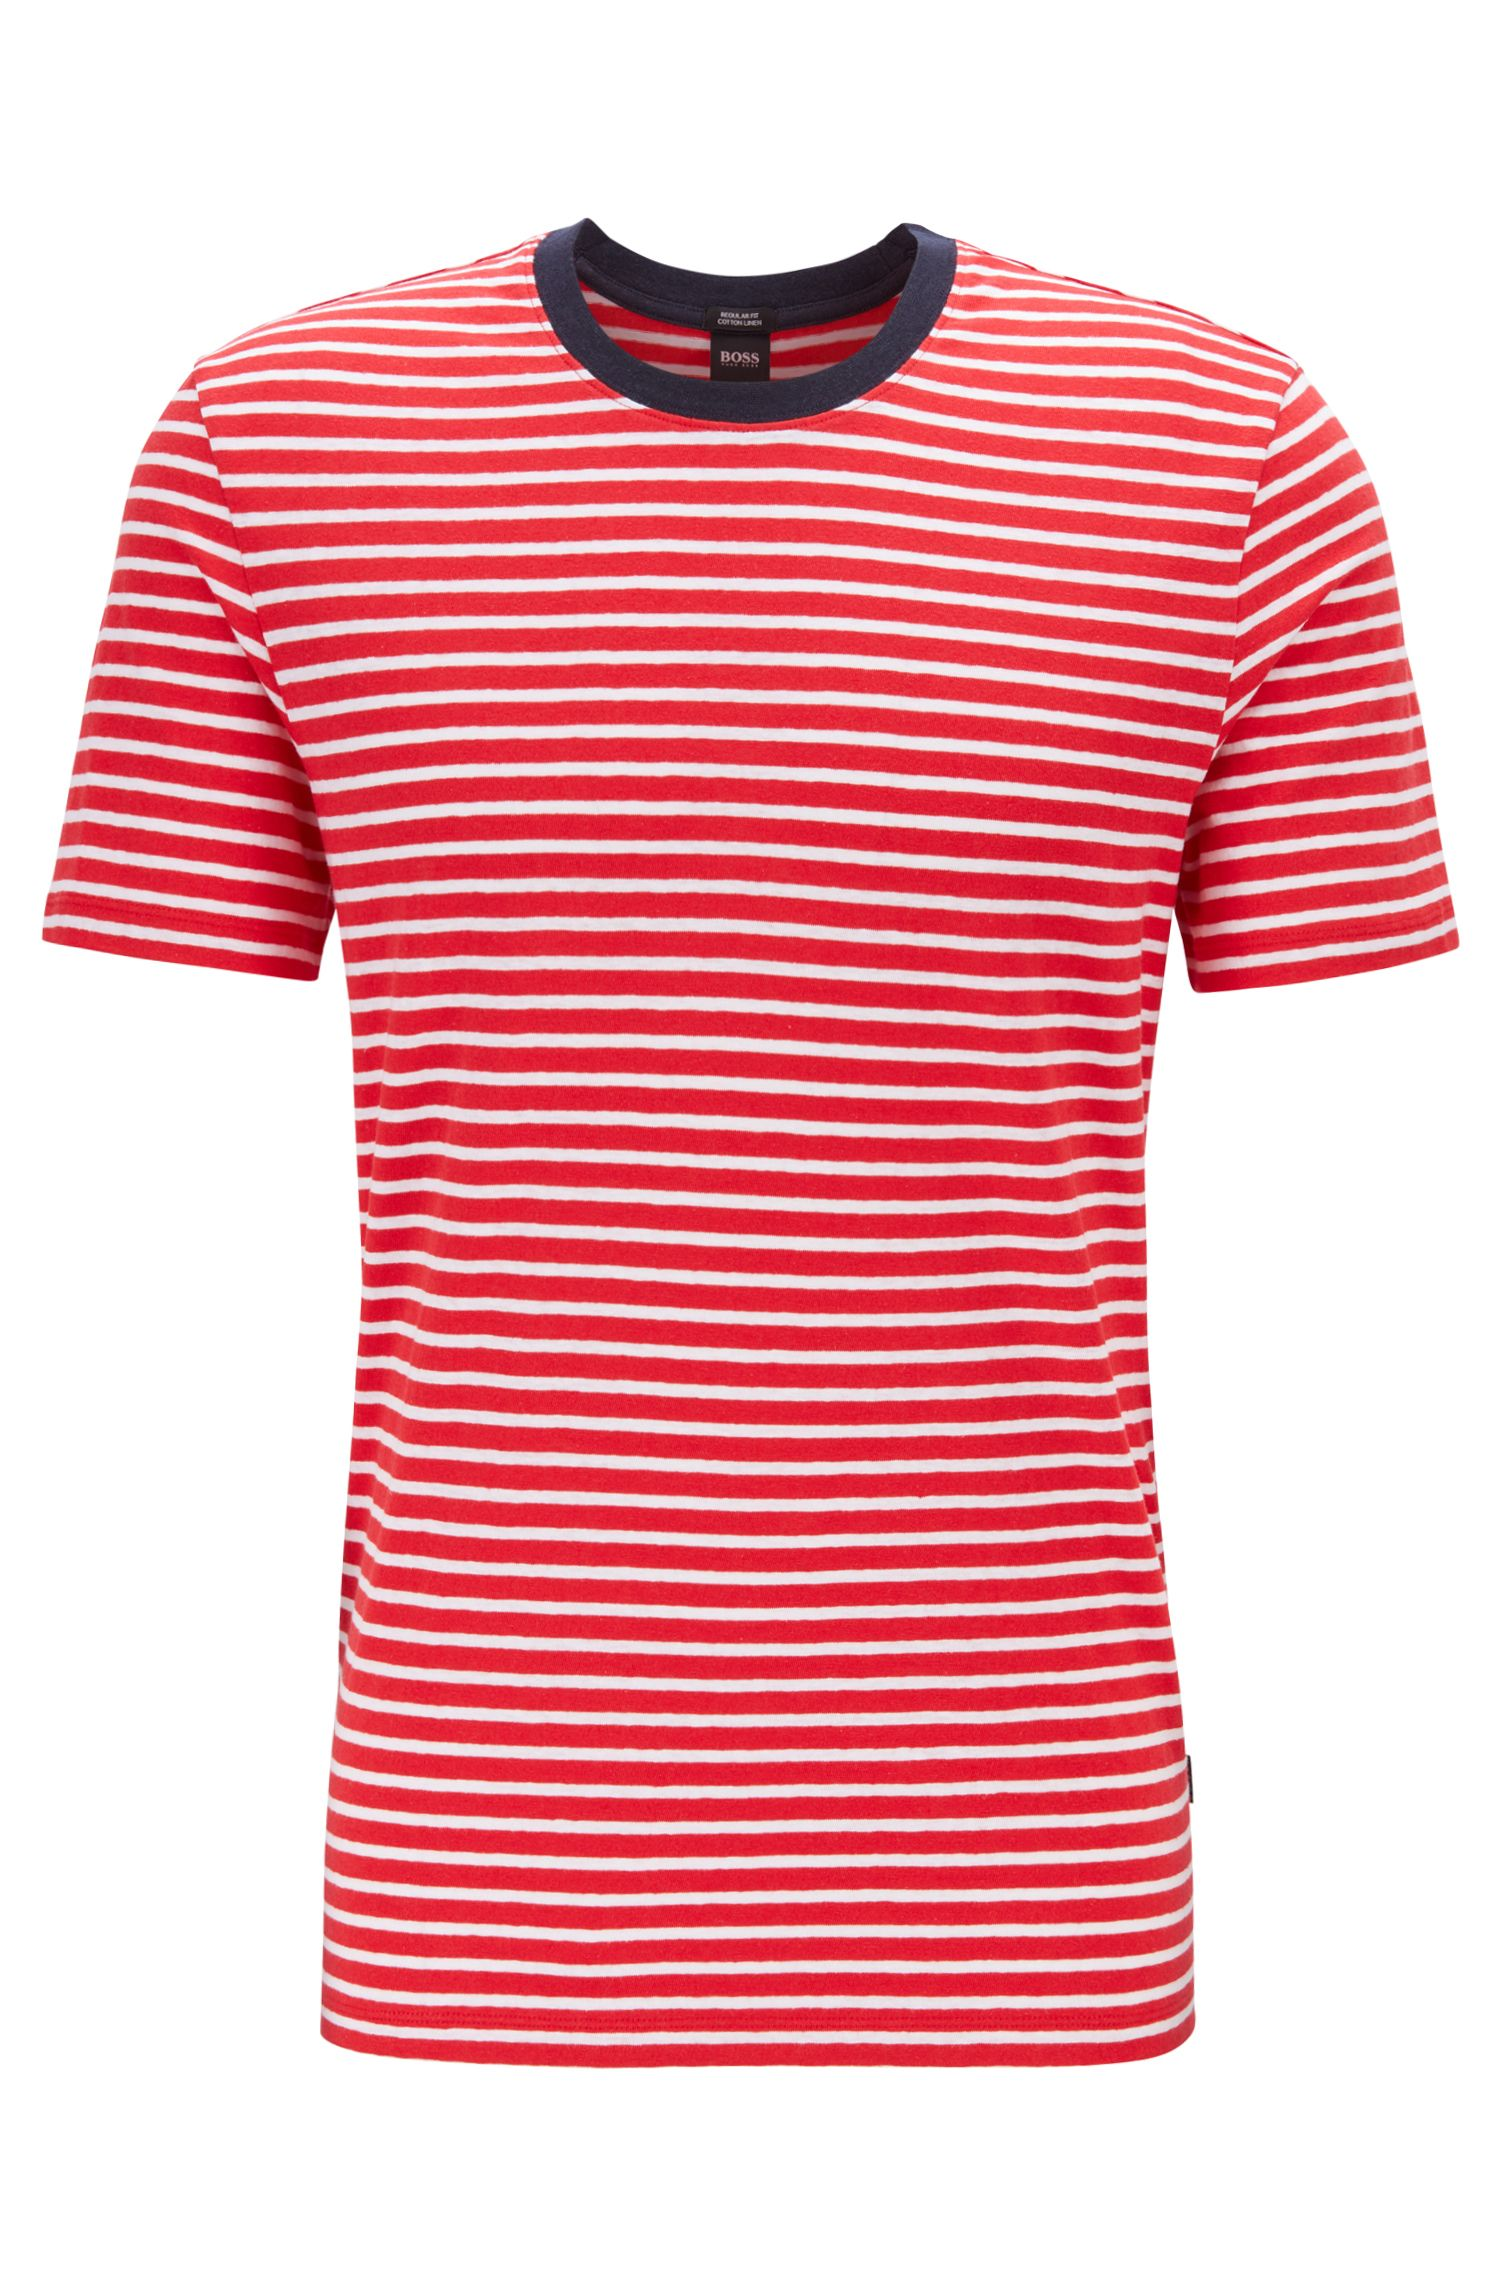 Crew-neck T-shirt in a striped linen-cotton blend, Red